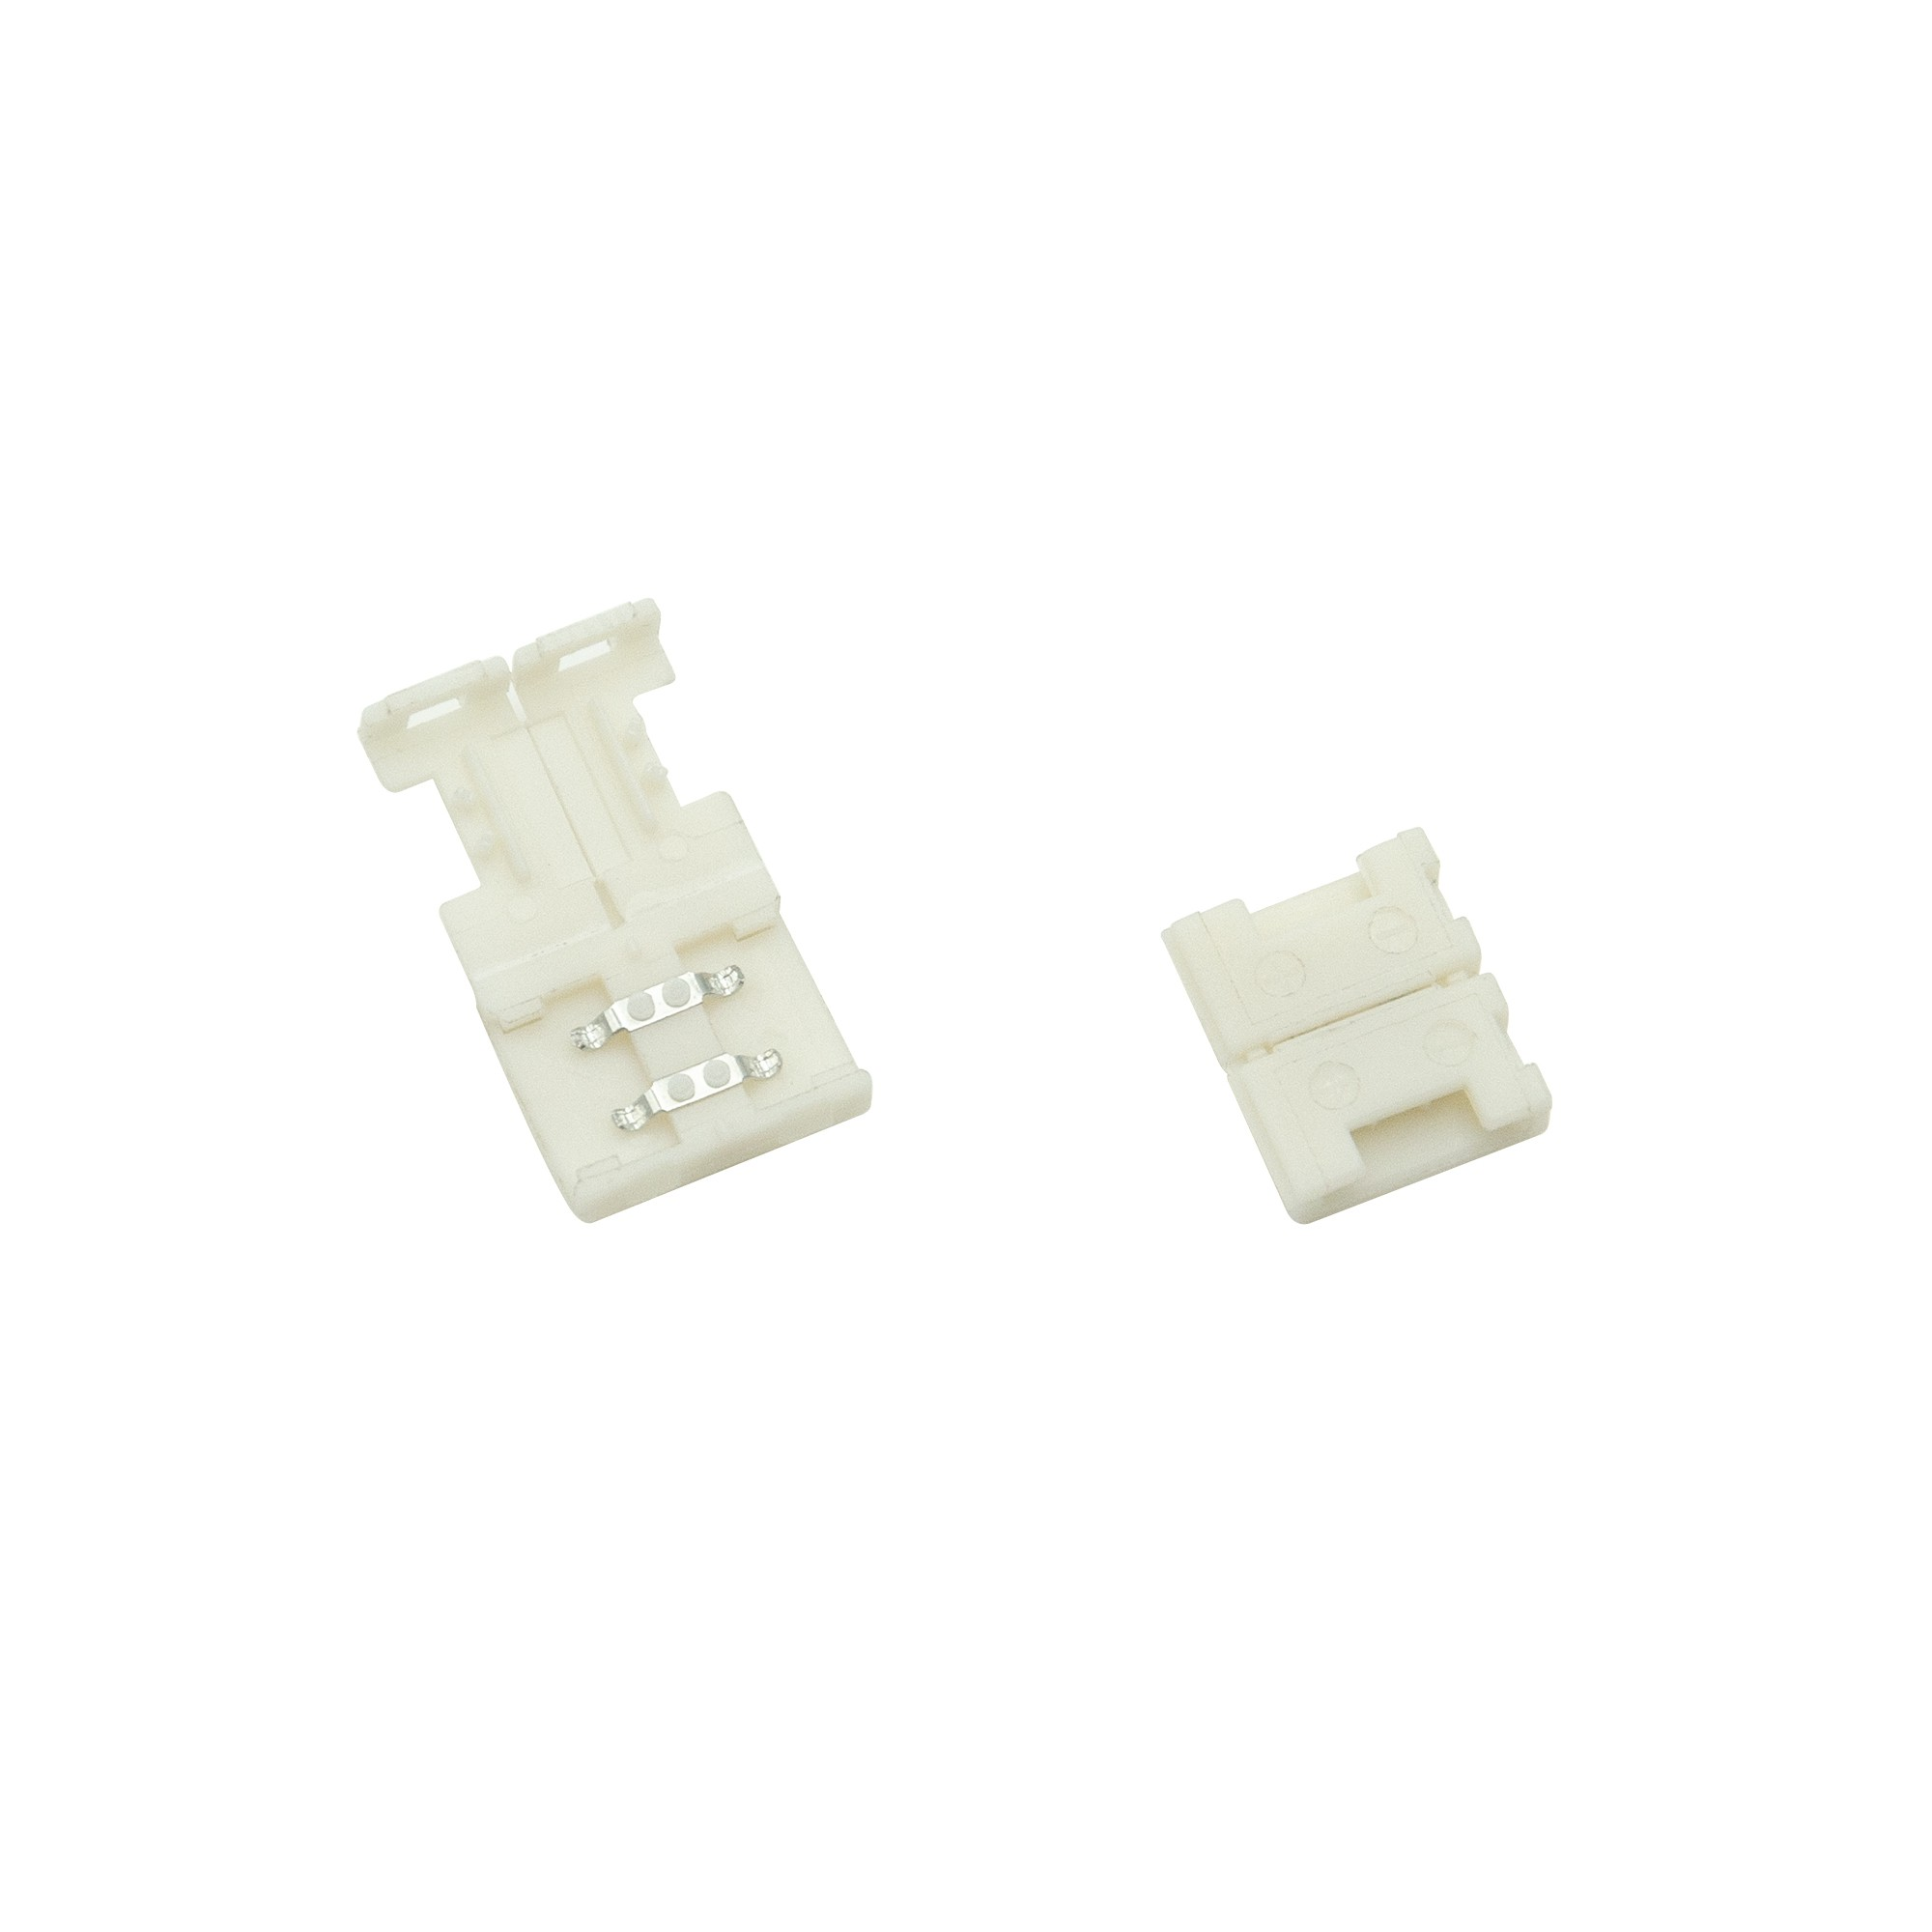 STRIP LIGHT DC CONNECTOR - 10mm